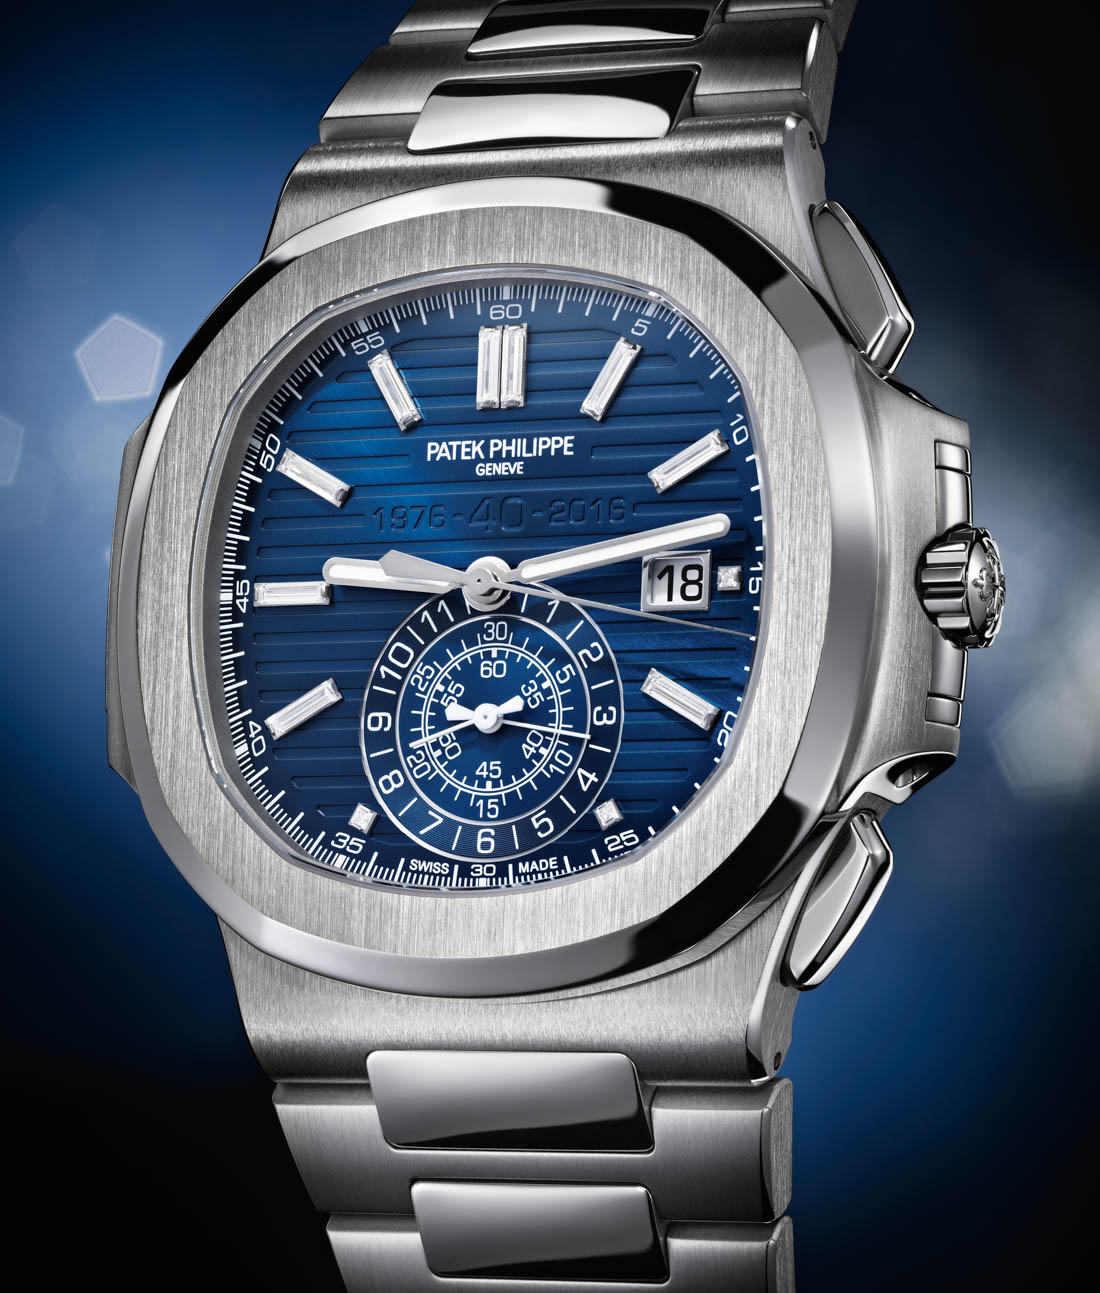 Patek Philippe celebrates 40 years of Nautilus with special edition